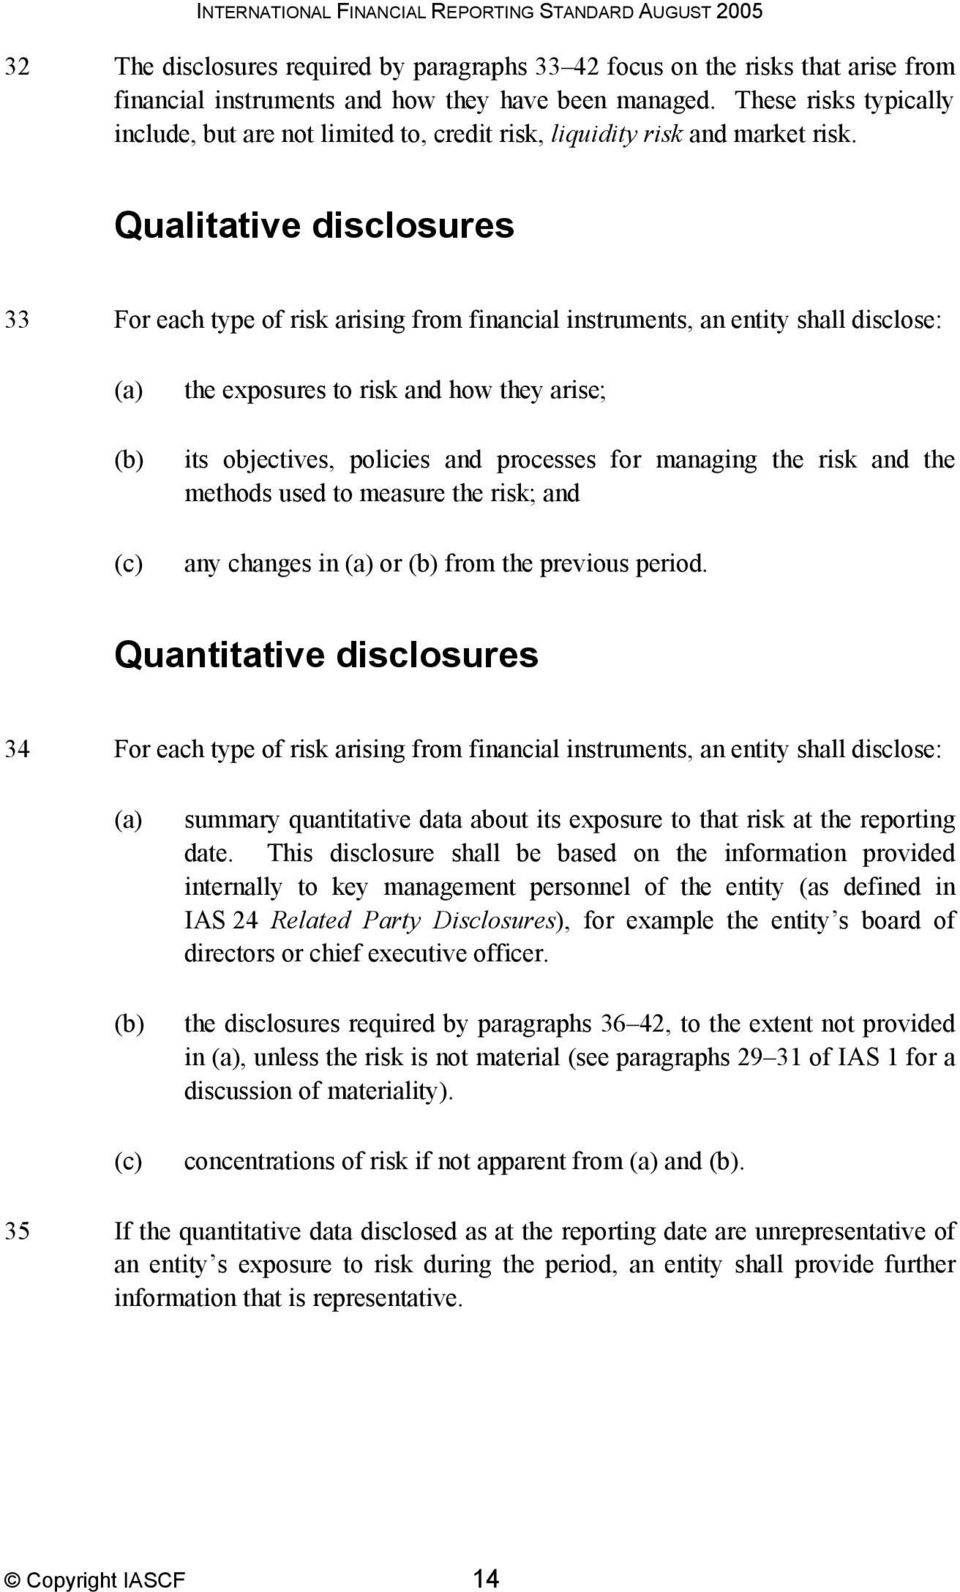 Qualitative disclosures 33 For each type of risk arising from financial instruments, an entity shall disclose: the exposures to risk and how they arise; its objectives, policies and processes for